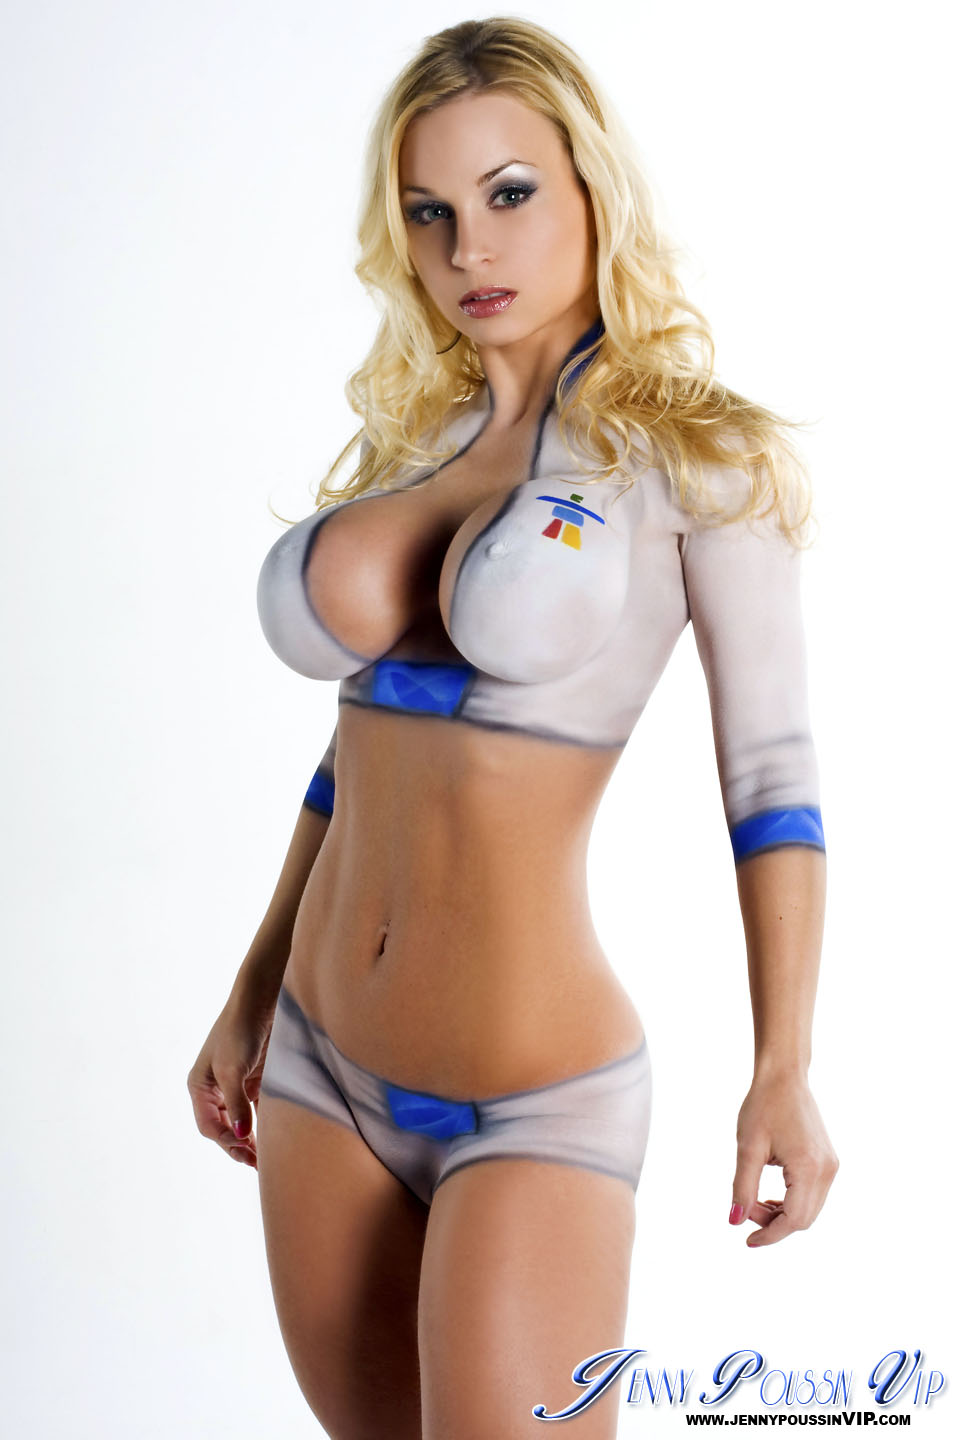 Jenny Poussin Modeling All Her Attributes In Nothing But Body Paint